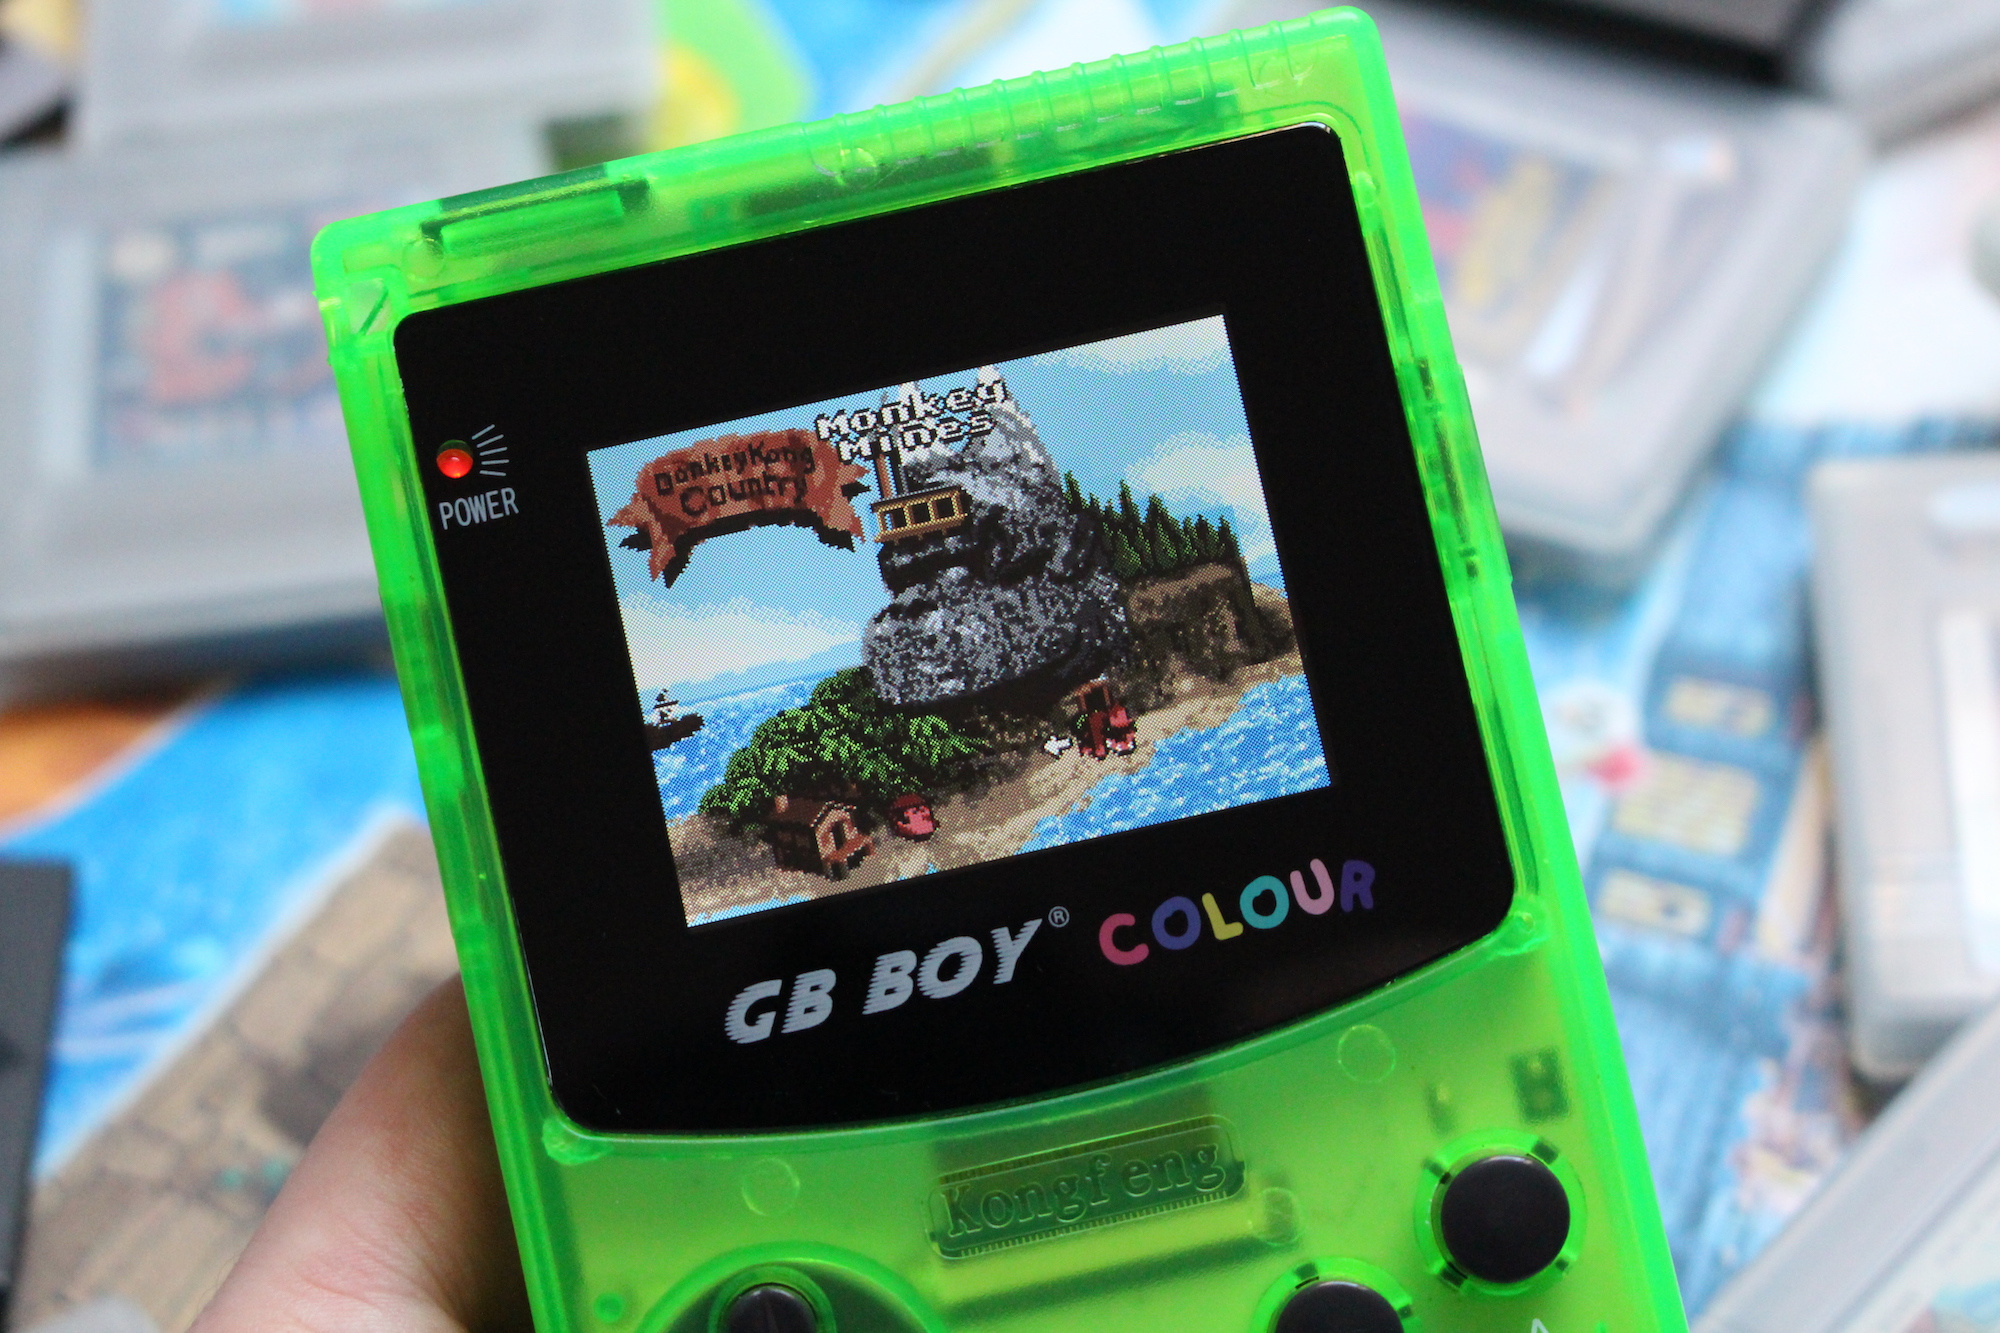 Hardware Review: GB Boy Classic And GB Boy Colour: The Best